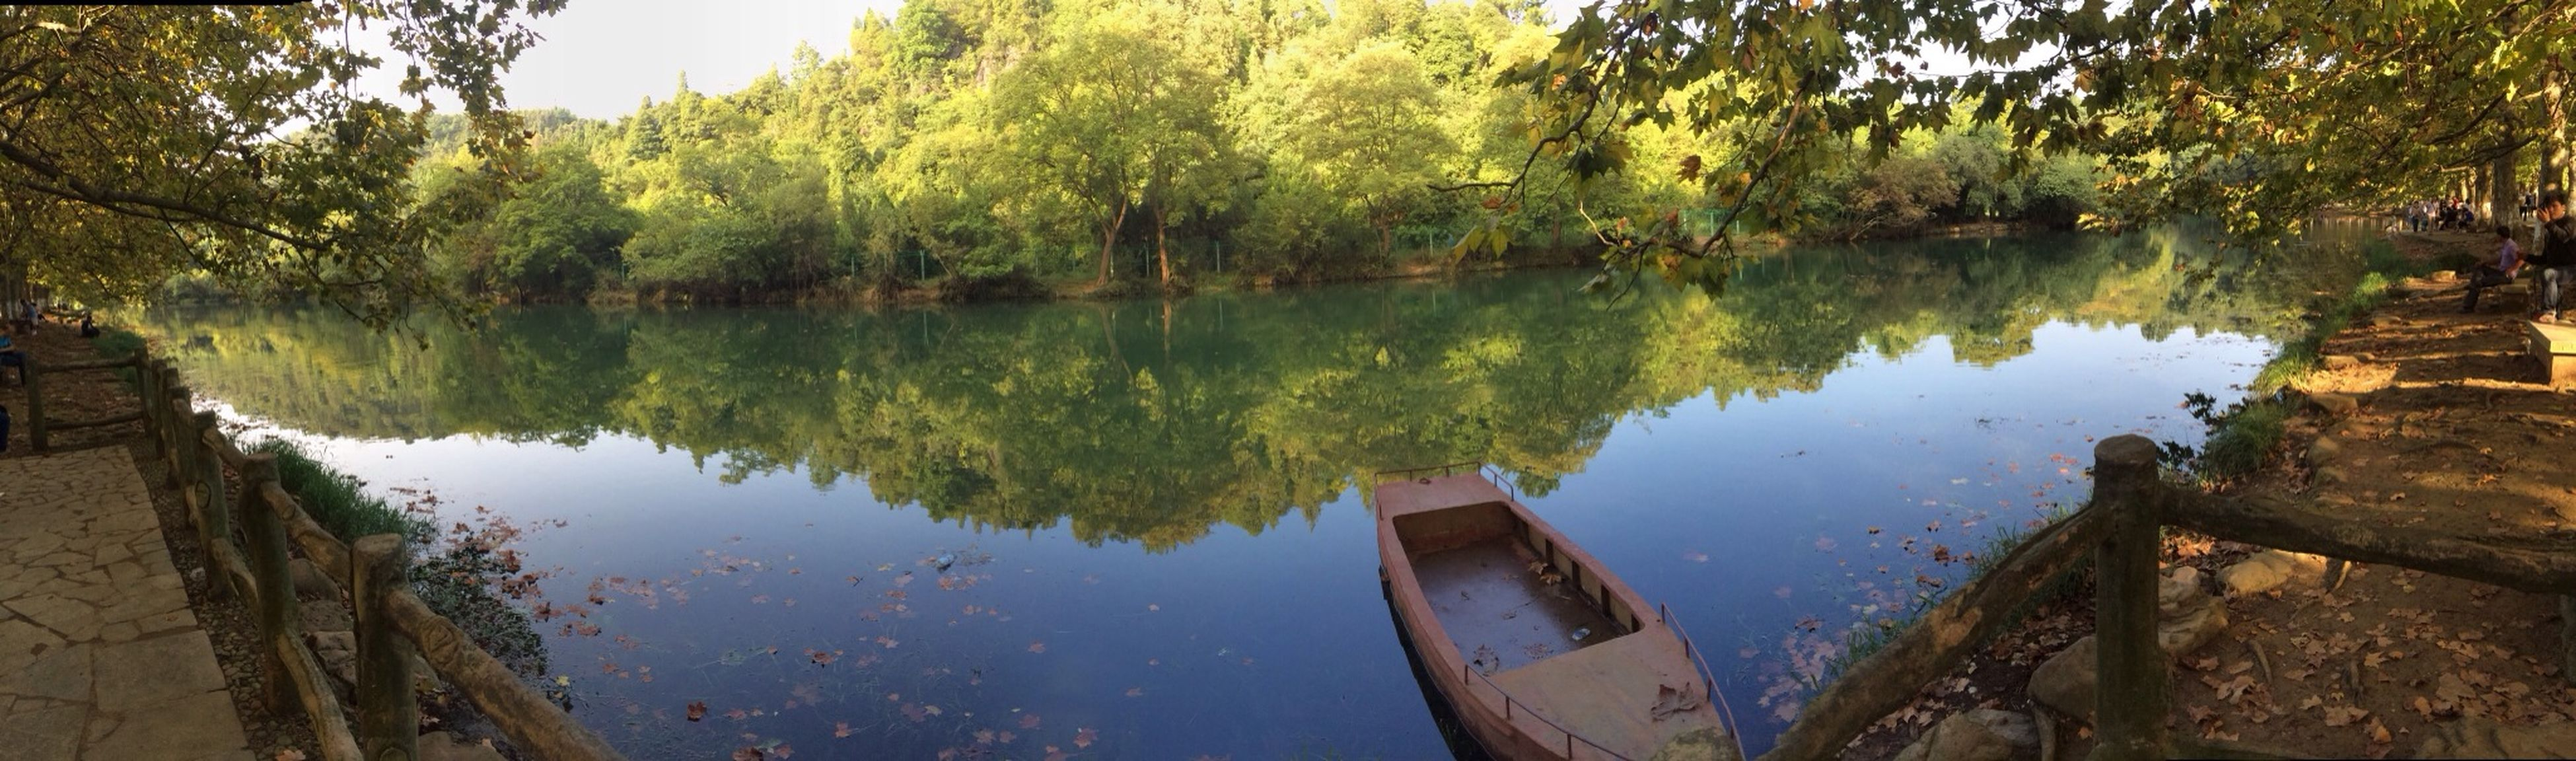 water, reflection, lake, tree, tranquility, tranquil scene, standing water, nature, beauty in nature, scenics, calm, day, sky, no people, blue, outdoors, growth, idyllic, river, green color